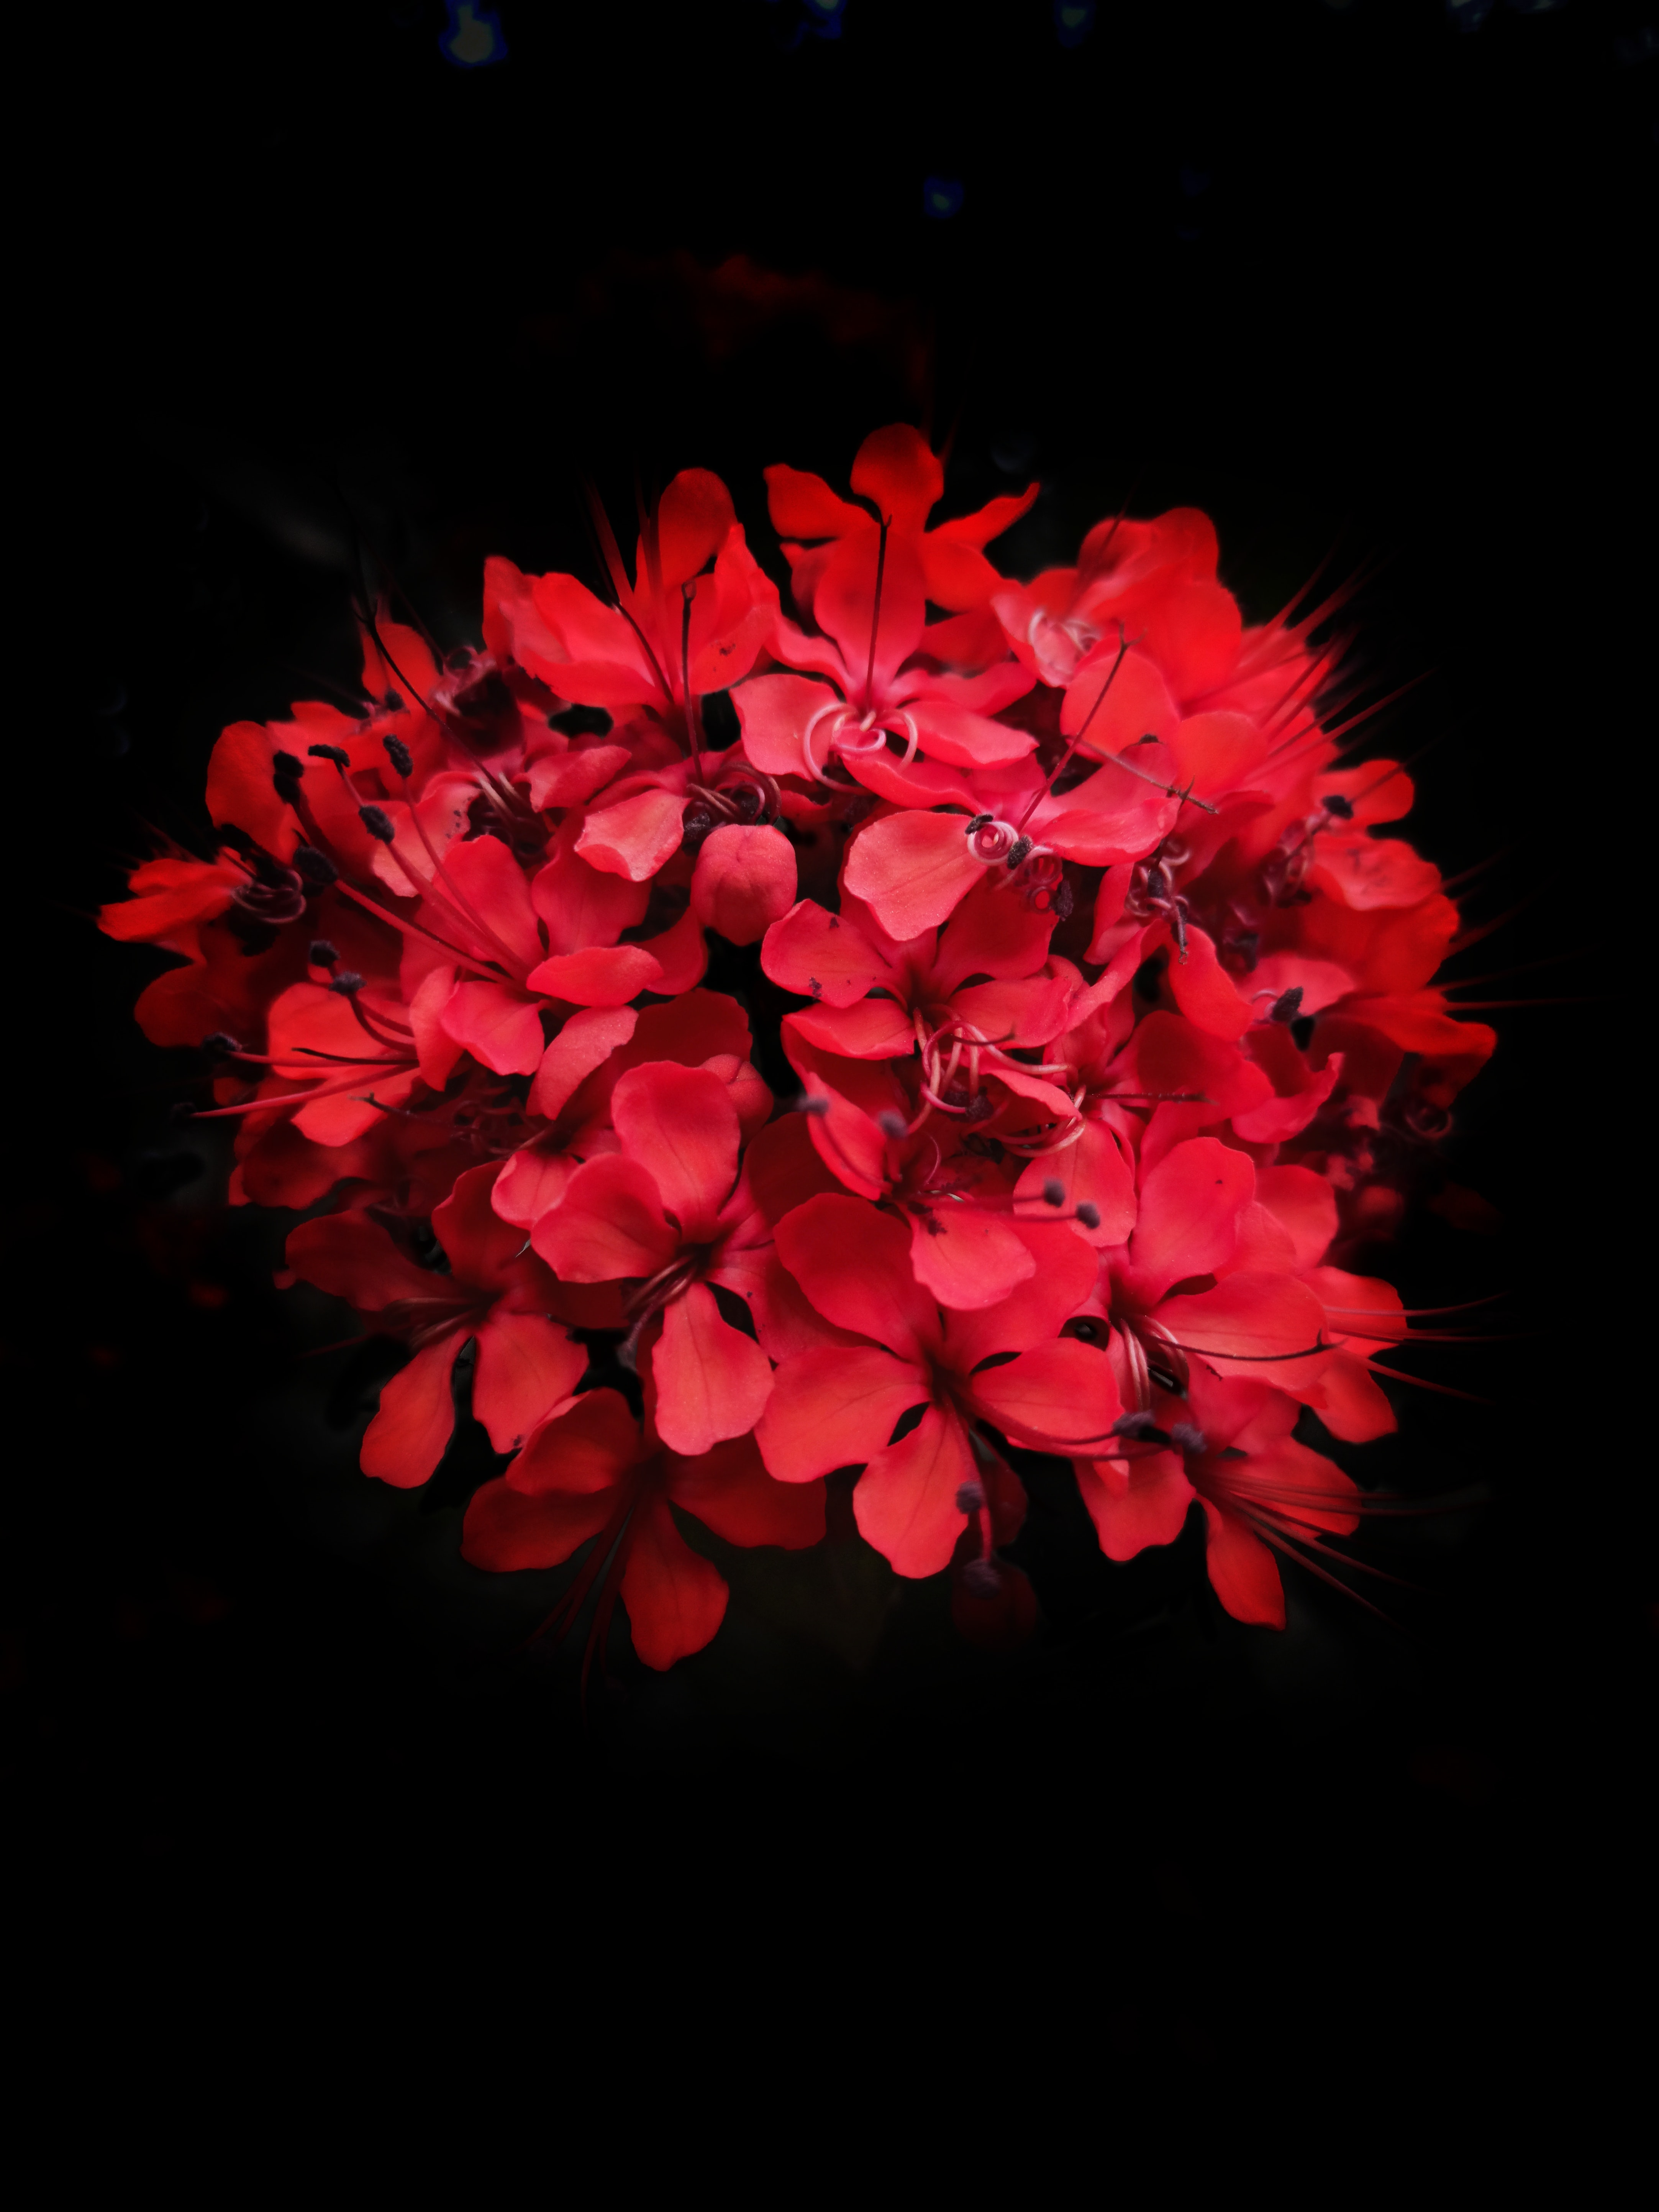 Red Flowers In Black Background Photo Free Blossom Image On Unsplash